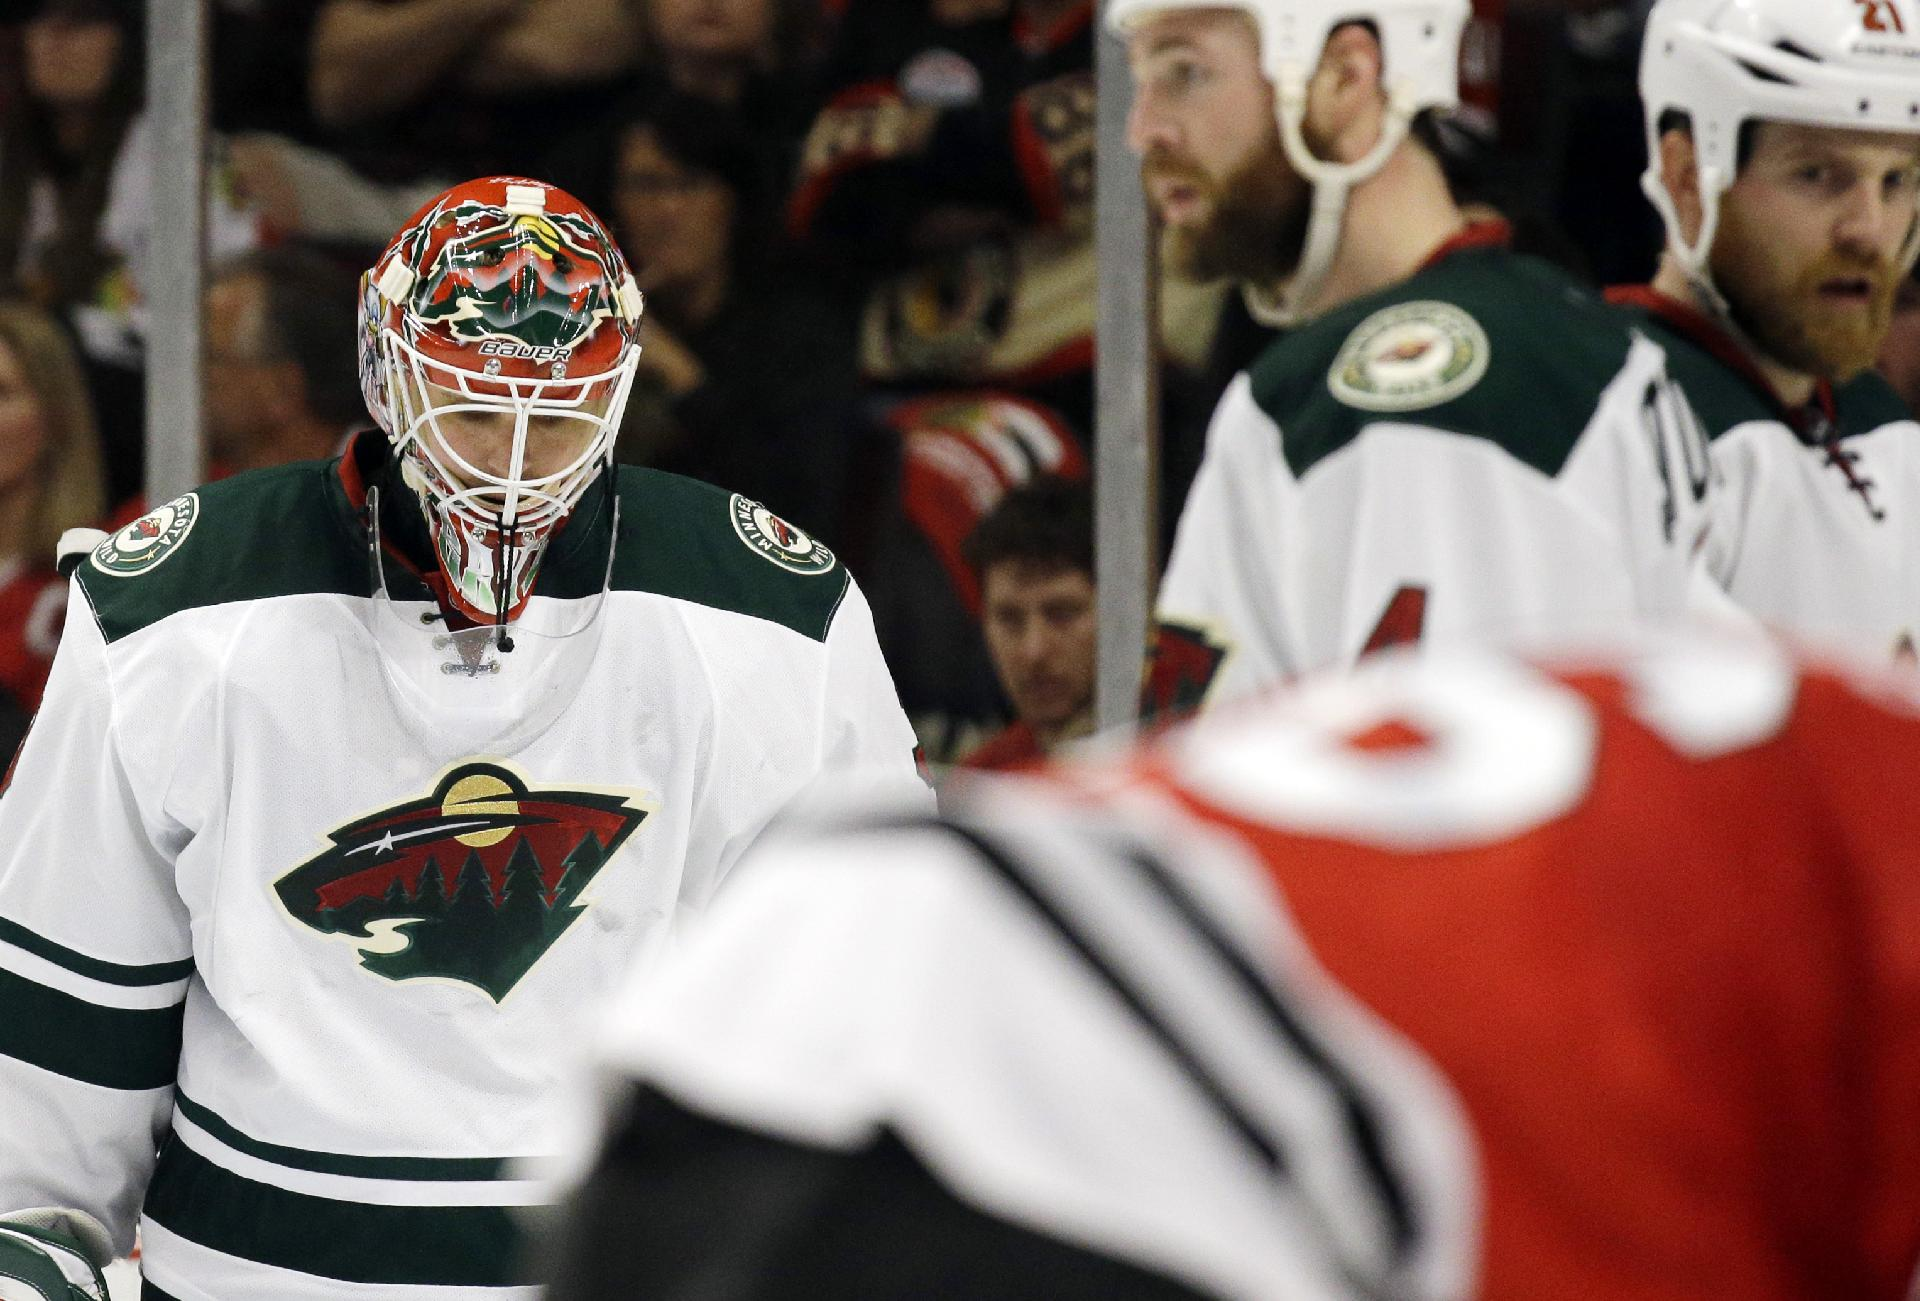 Minnesota Wild goalie Ilya Bryzgalov, left, looks down during the second period in Game 5 of an NHL hockey second-round playoff series against the Chicago Blackhawks in Chicago, Sunday, May 11, 2014. The Blackhawks won 2-1